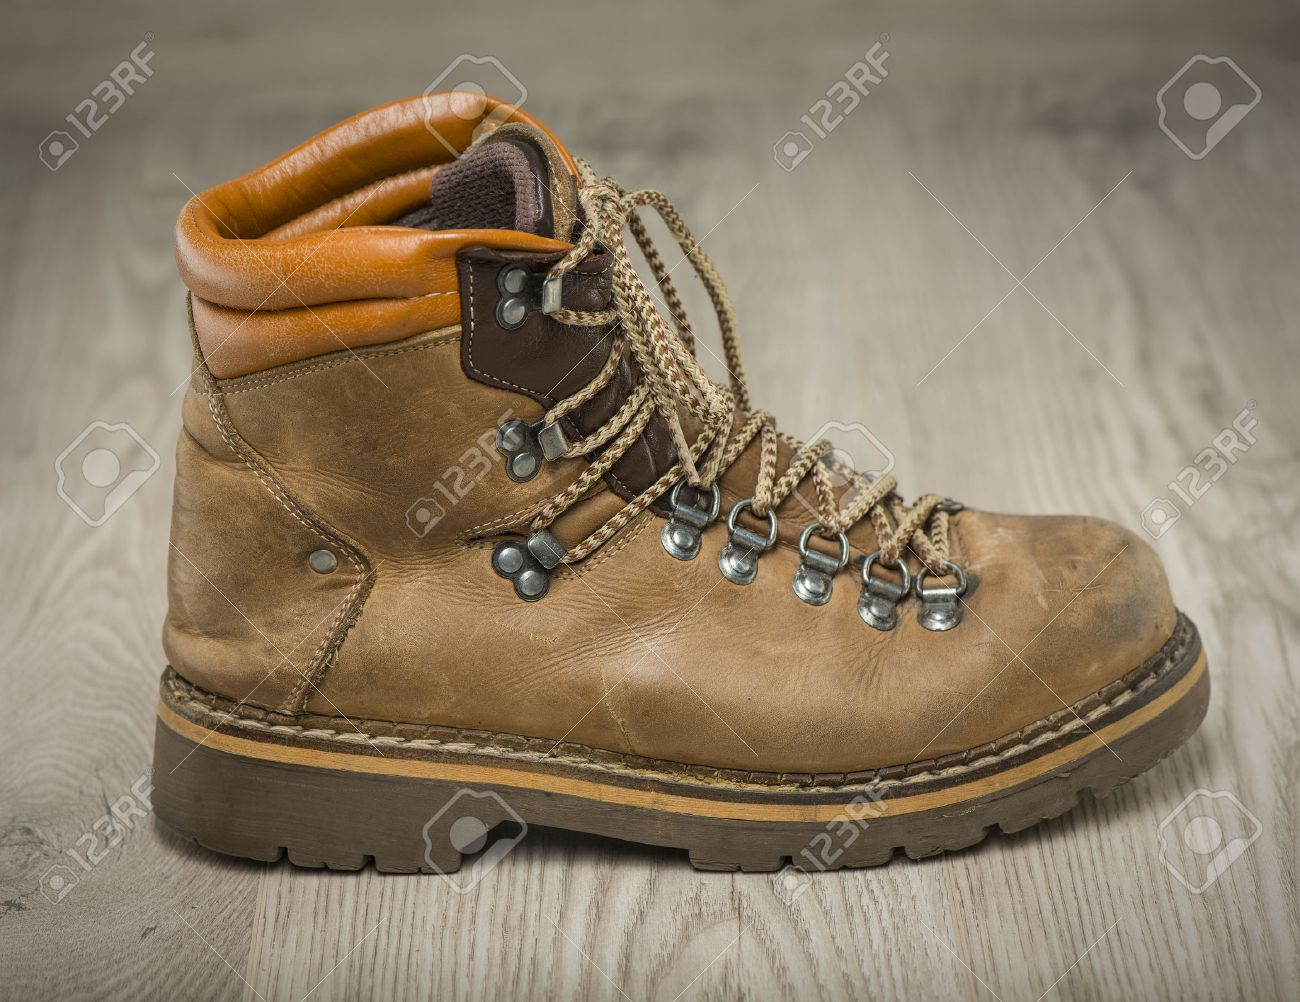 0c54c76f61c Mens working or hiking boots made of brown leather, vintage look,..